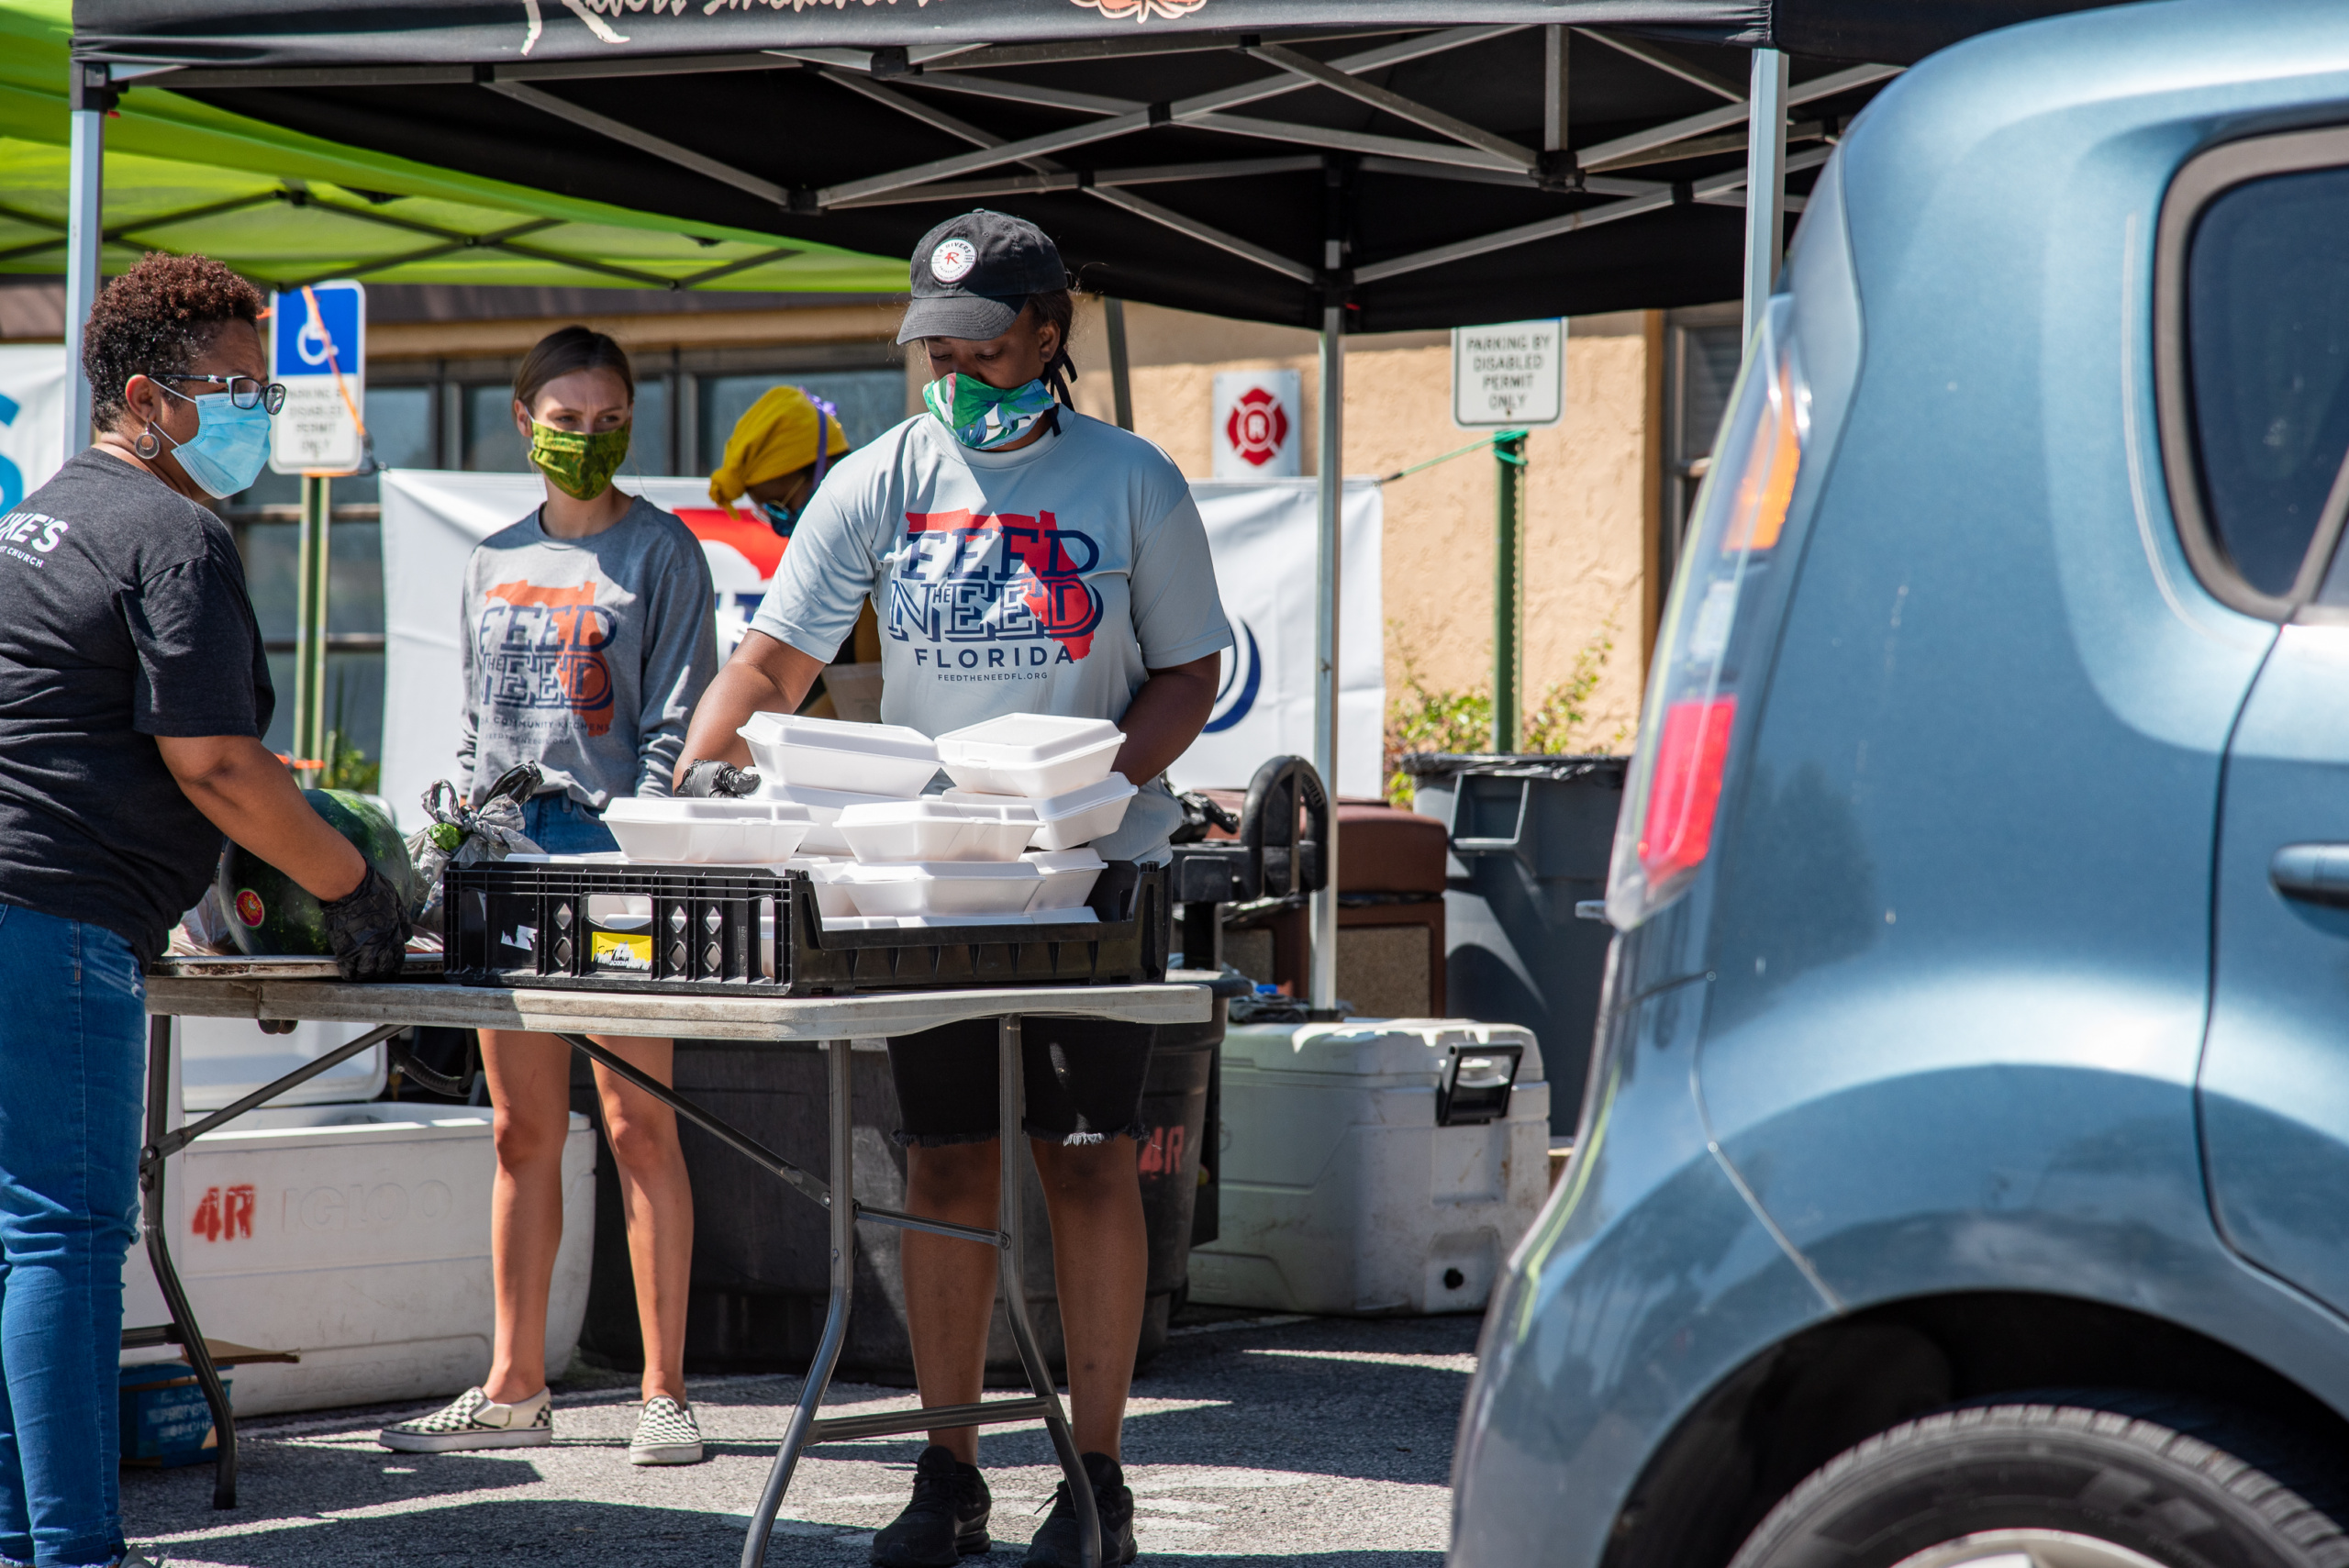 Feed the Need Florida donates meals to deserving Florida families